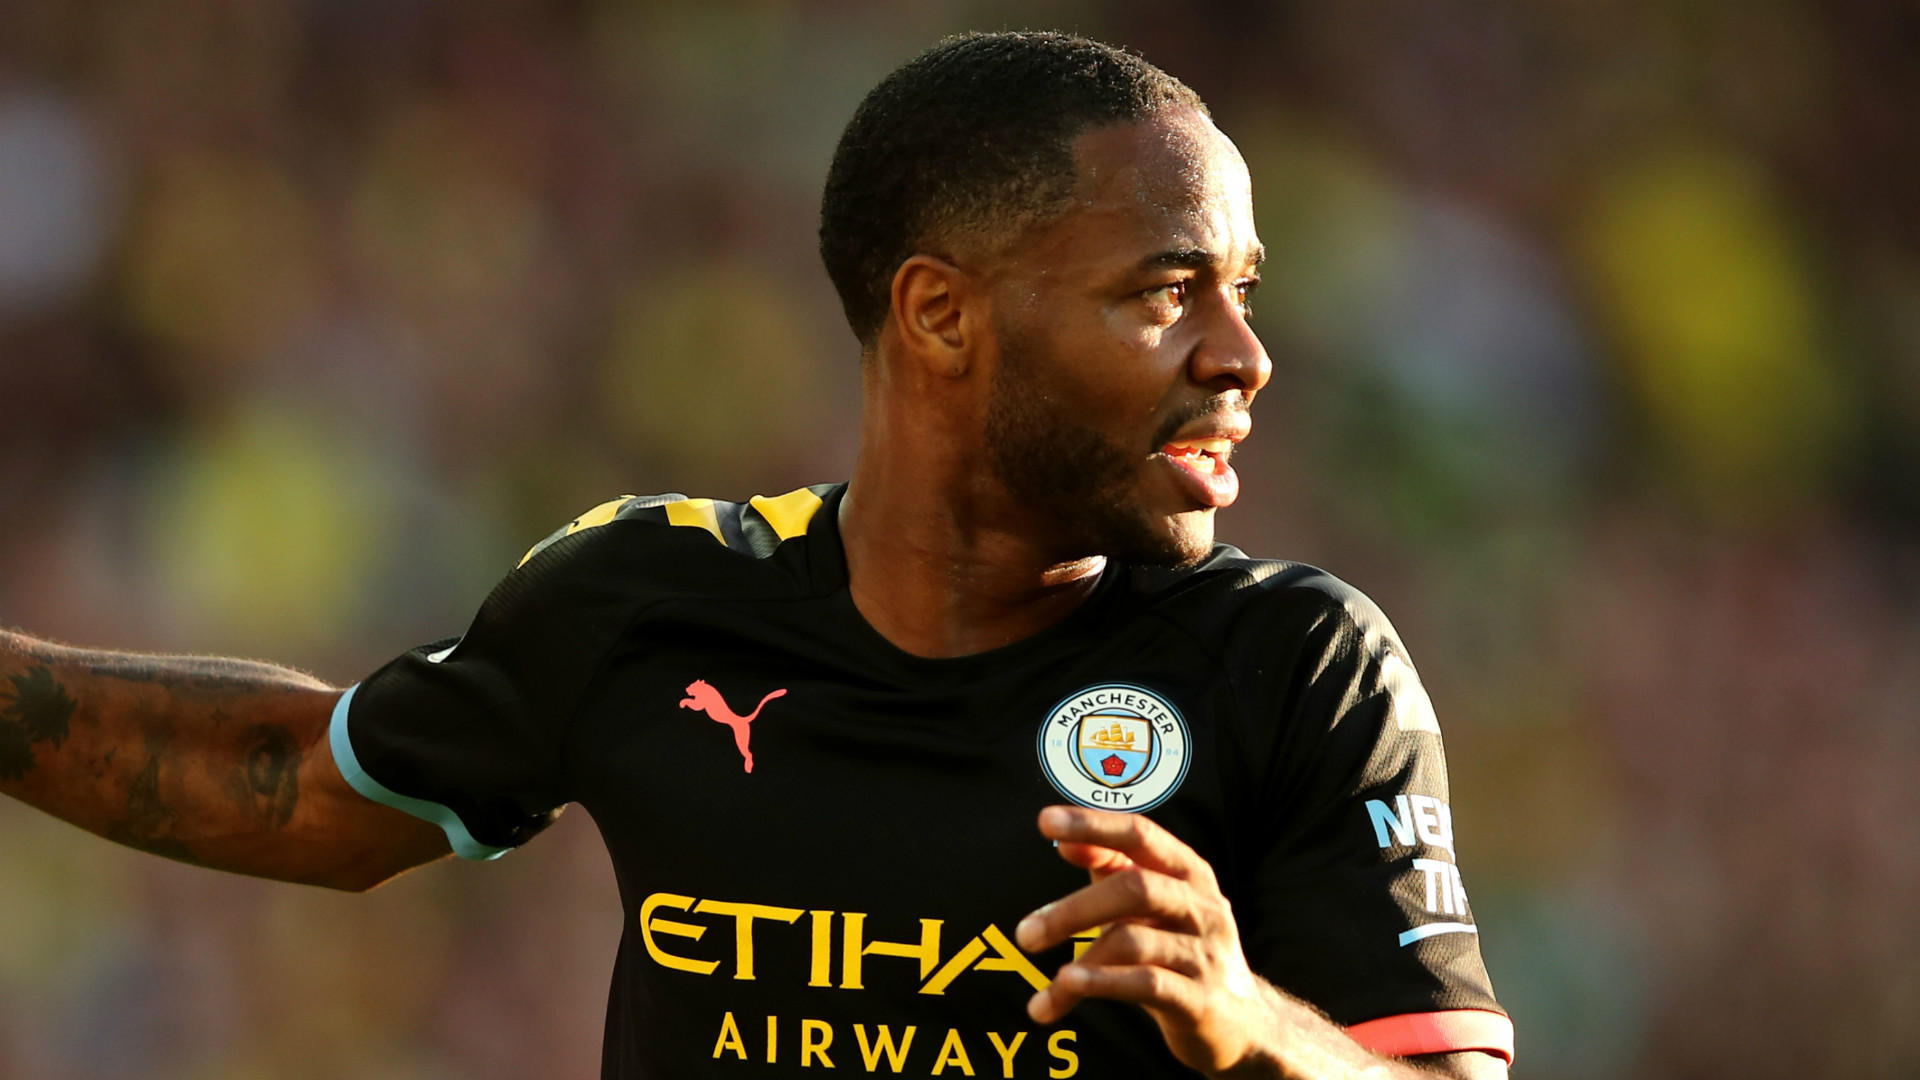 Video: Sterling cannot compare with Ronaldo or Messi - Guardiola